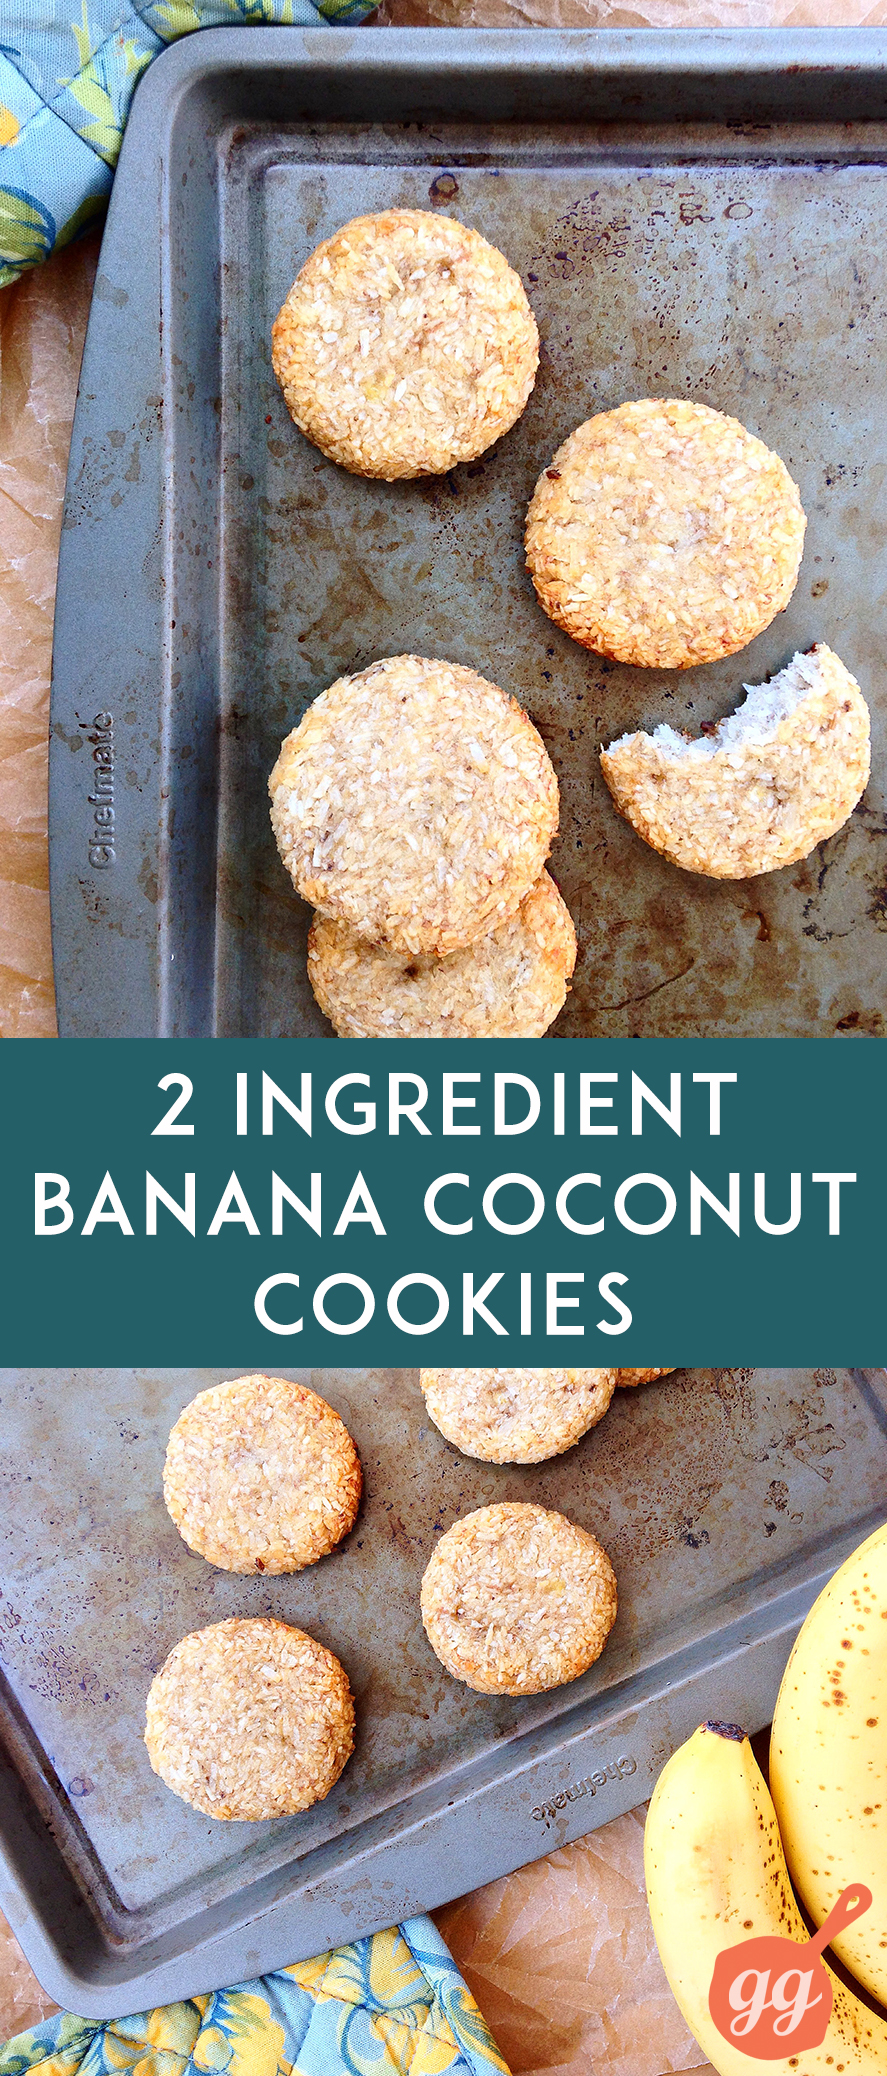 2 Ingredient Banana Coconut Cookies | GrokGrub.com #paleo #vegan #healthy